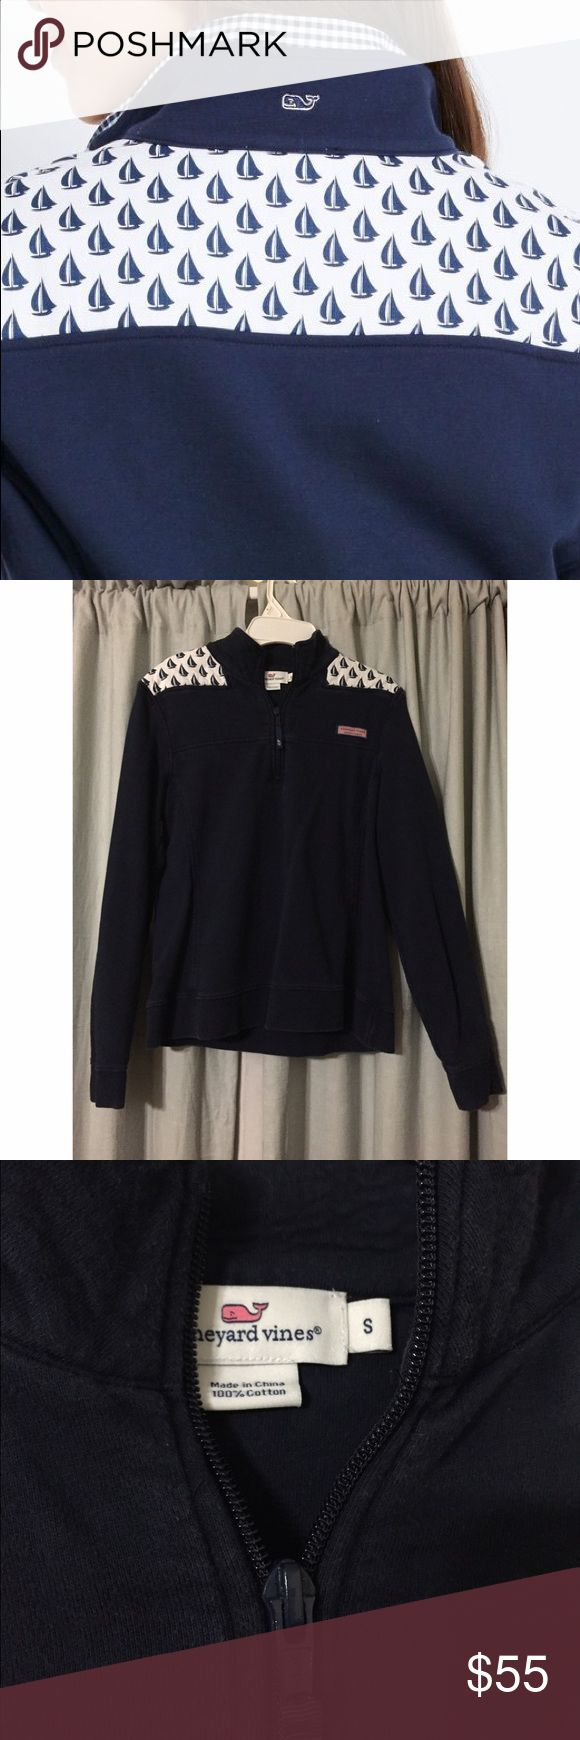 vineyard vines sailboat shep shirt navy sailboat shep shirt, small, worn a couple times but still in decent condition. it's starting to fade a little bit towards the seams. Vineyard Vines Sweaters